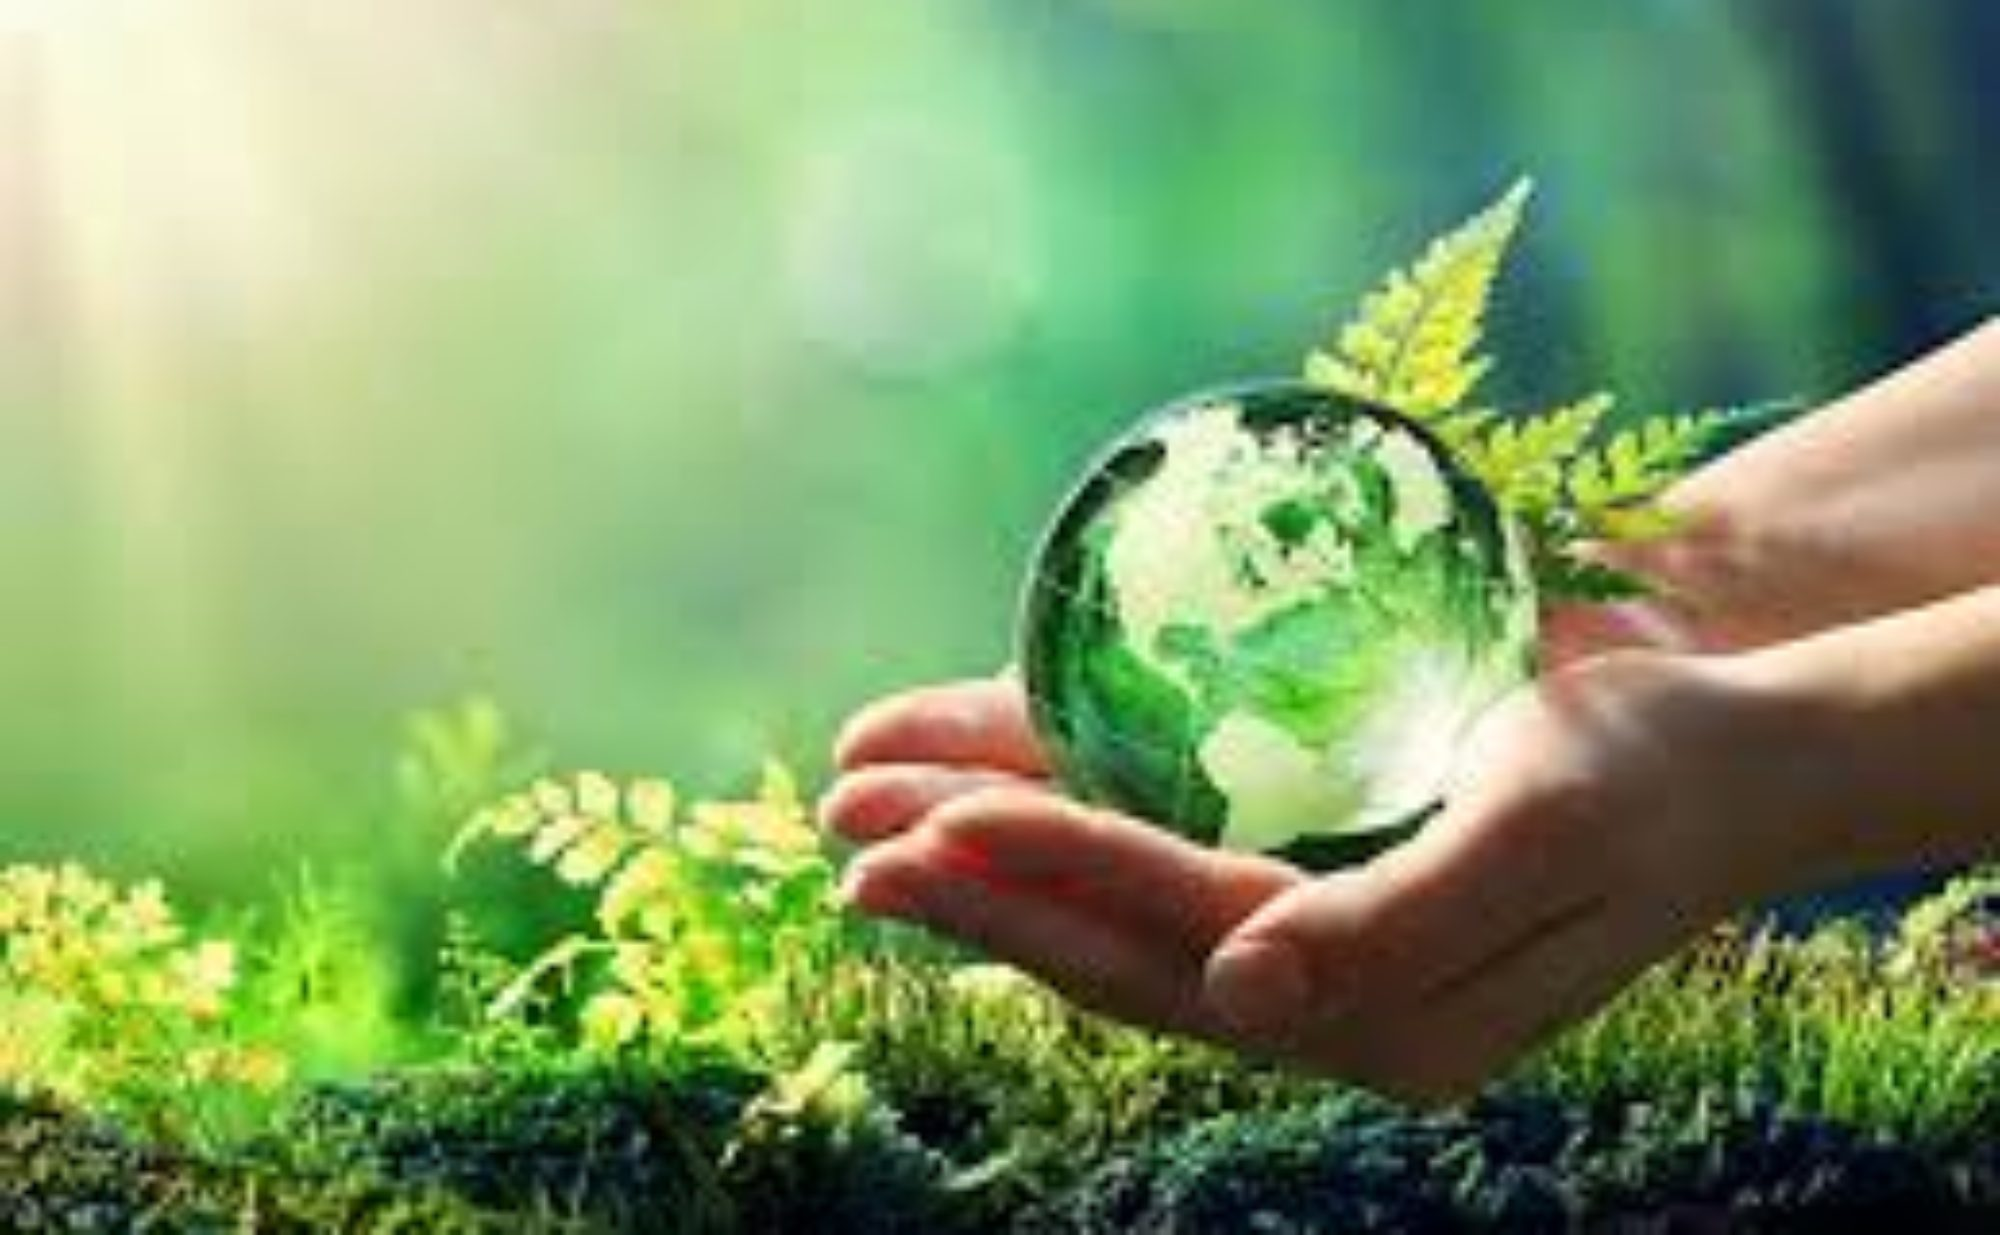 Environmentally responsible products and how to best use them